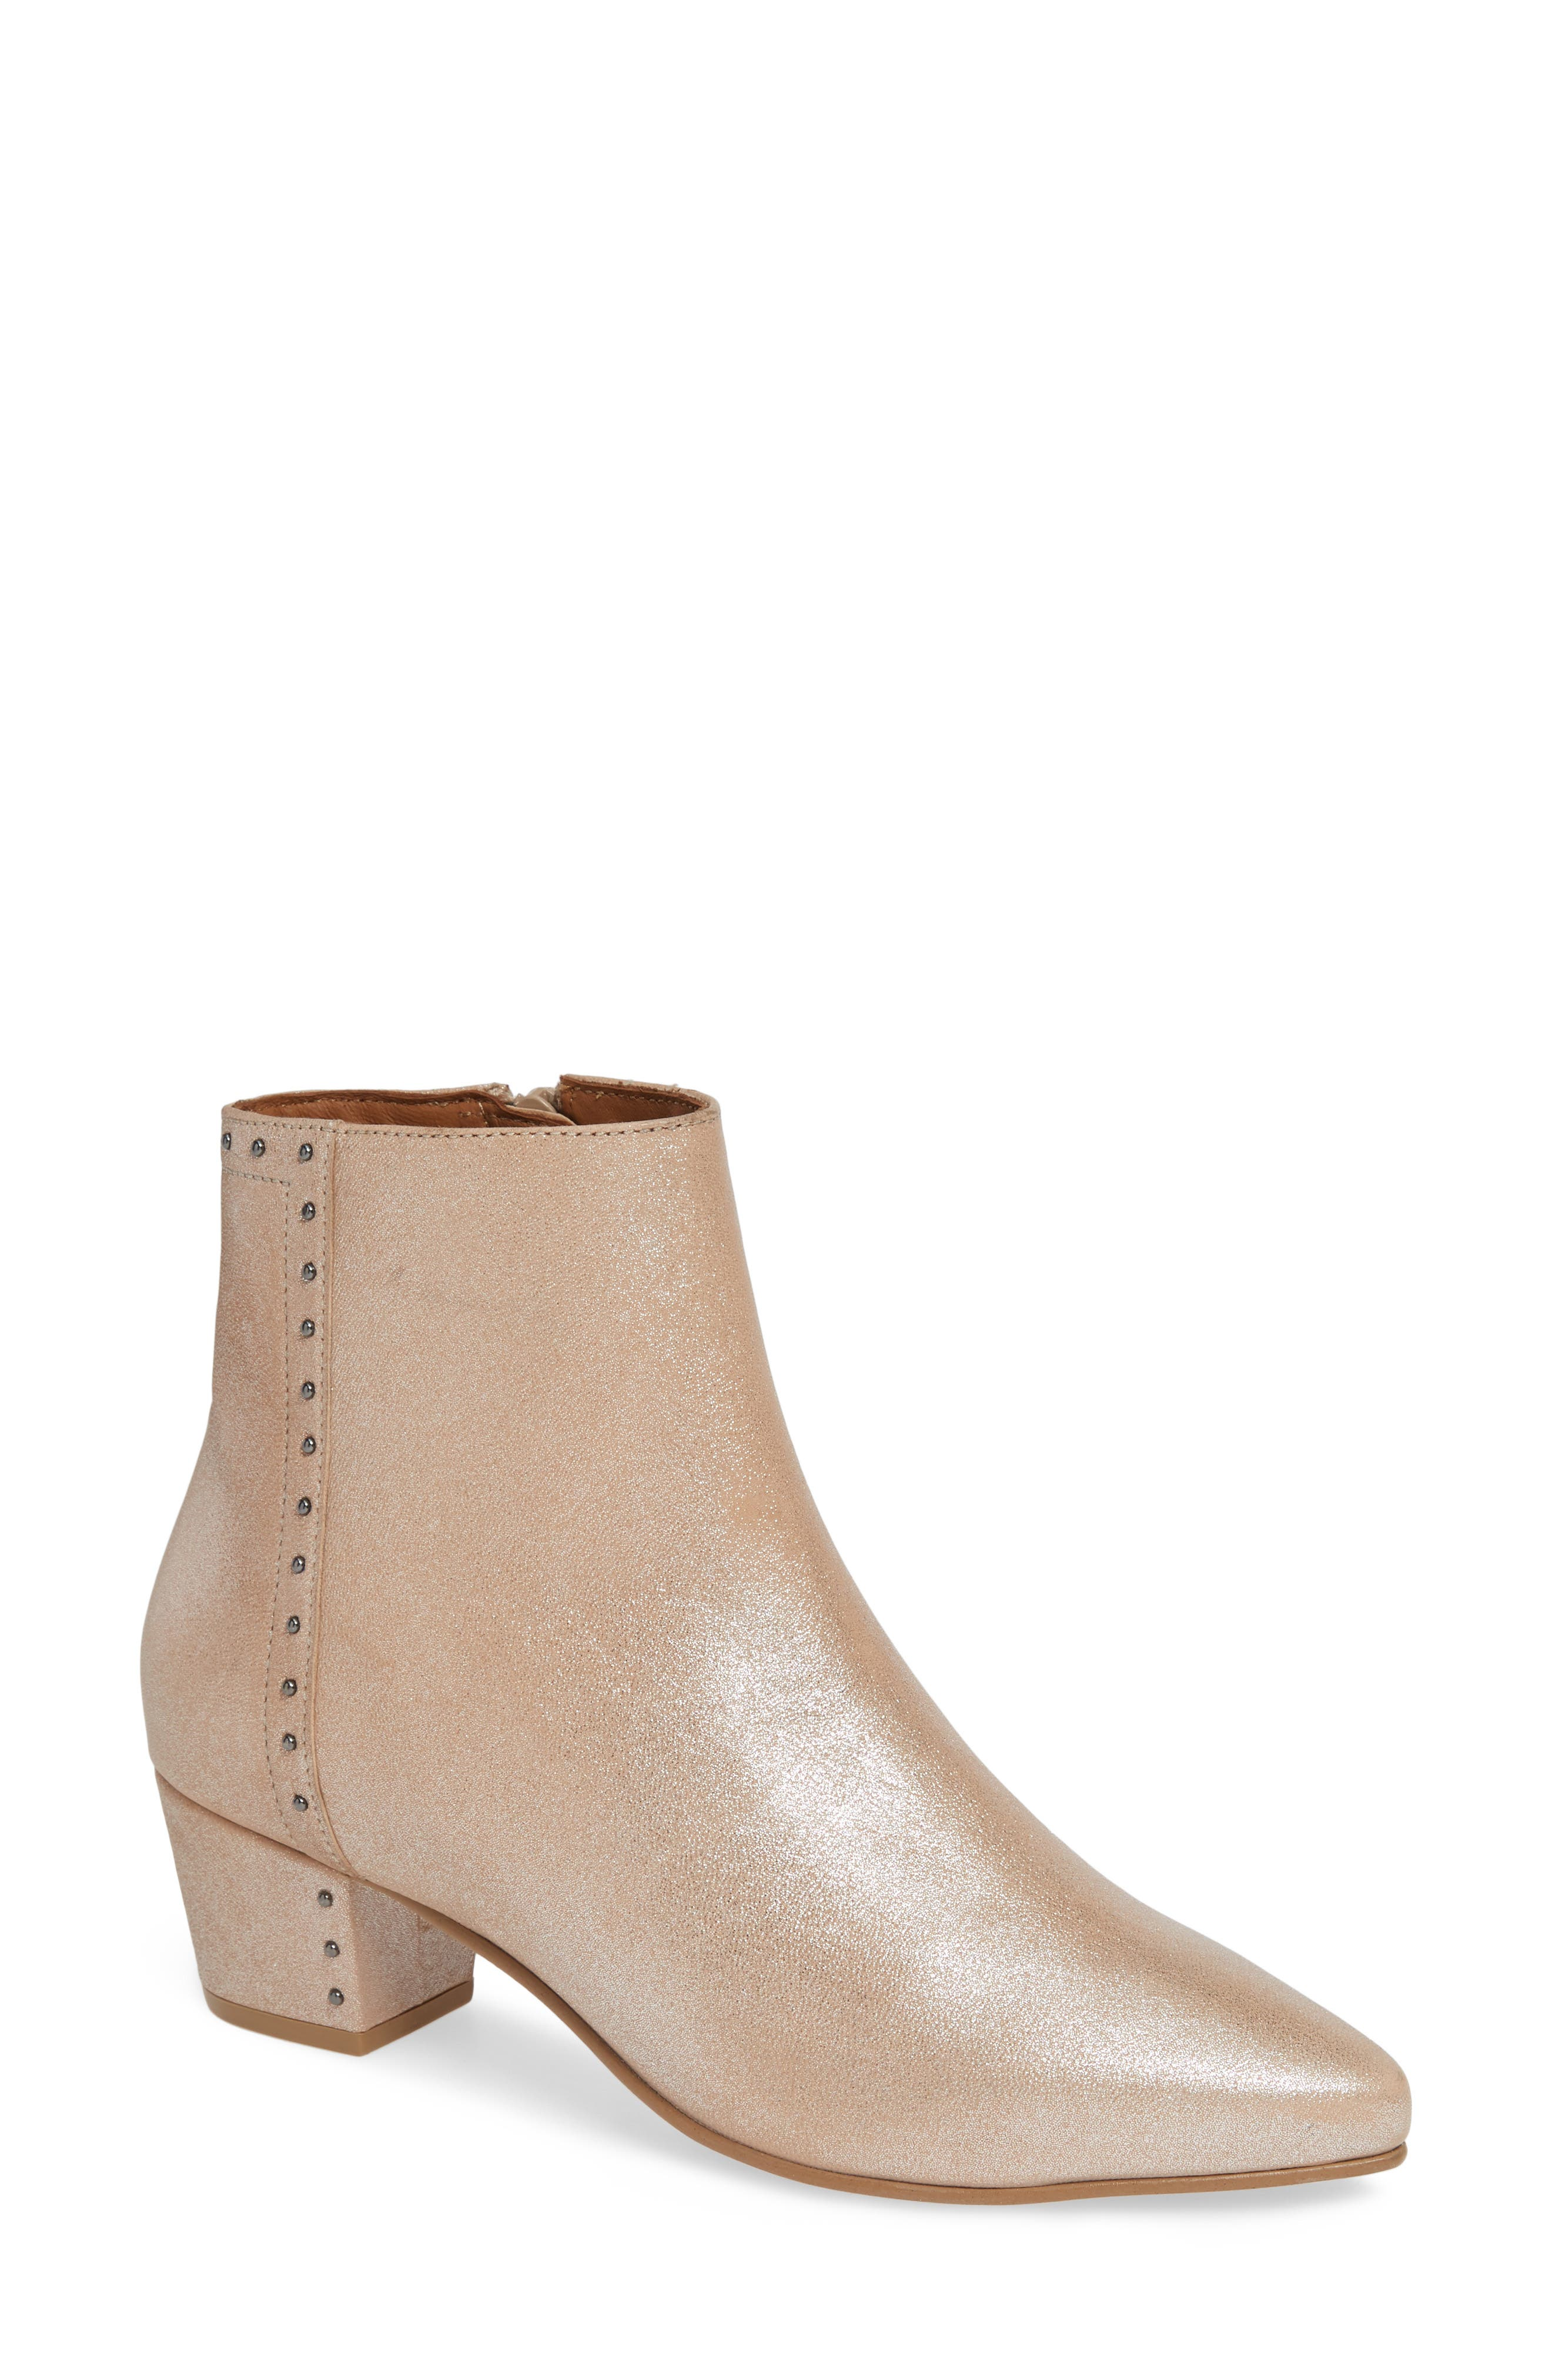 SEYCHELLES,                             Wake Up Bootie,                             Main thumbnail 1, color,                             BLUSH METALLIC LEATHER